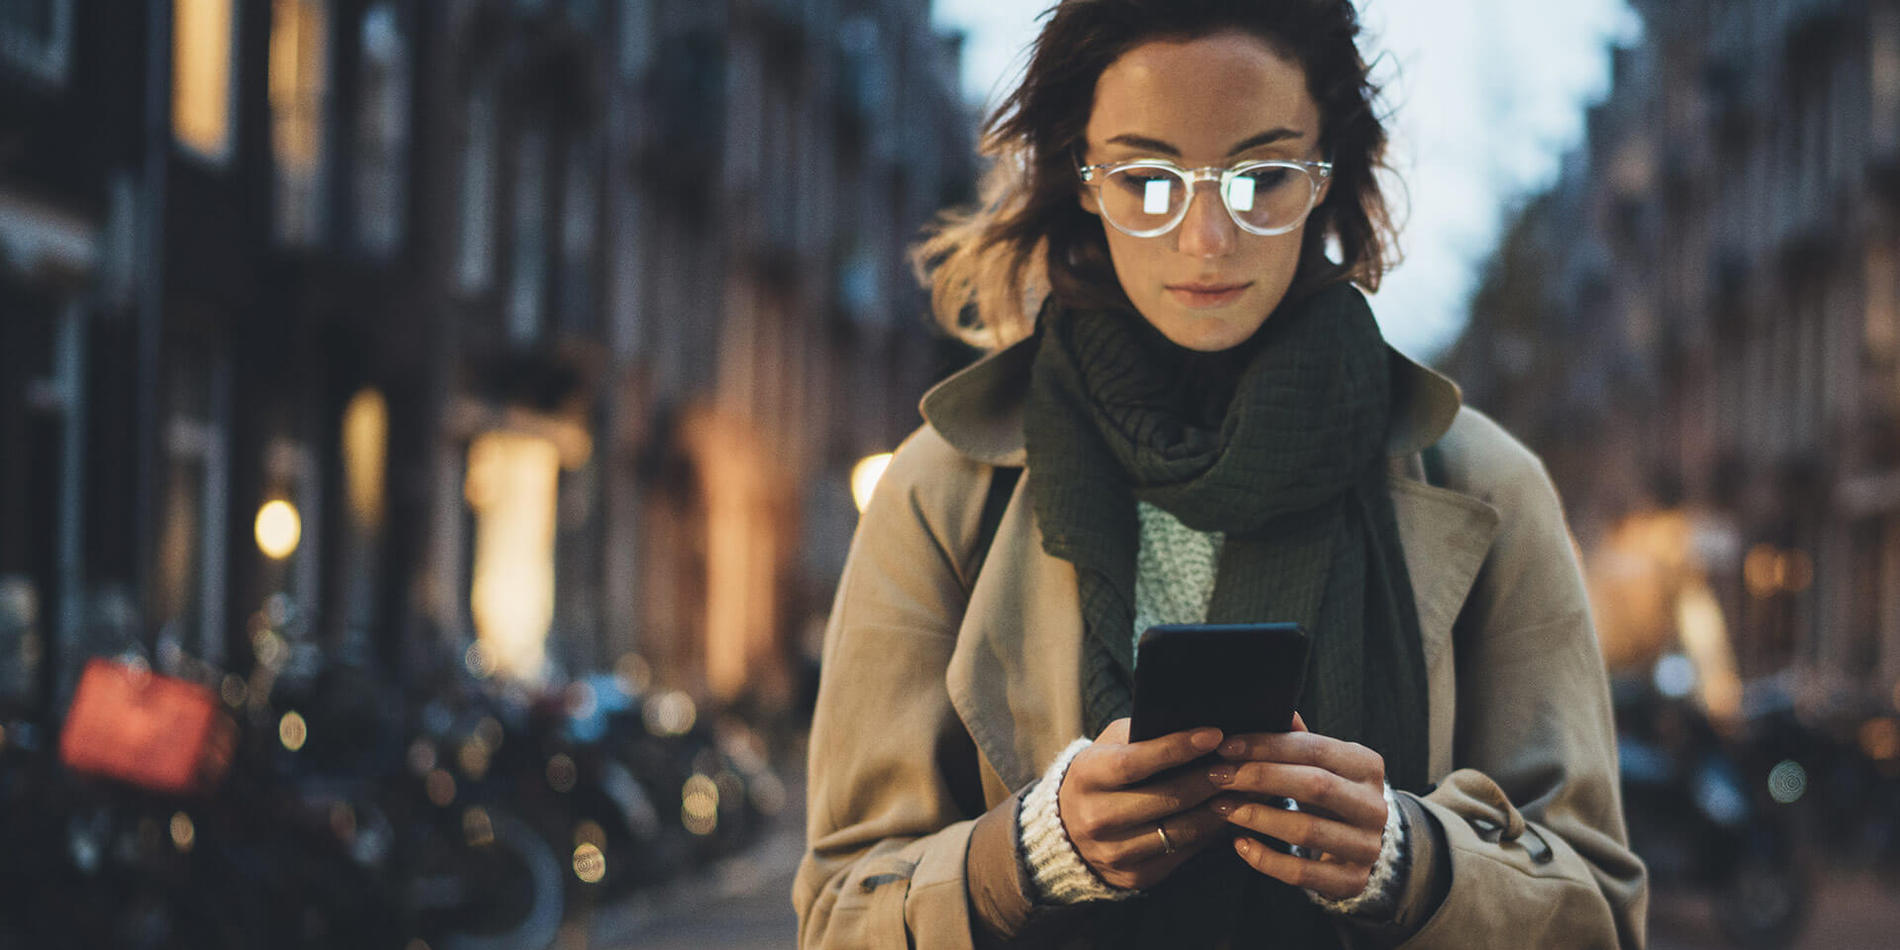 Photo of young woman looking at her Optimum WiFi Hotspot connected phone while walking on a city street